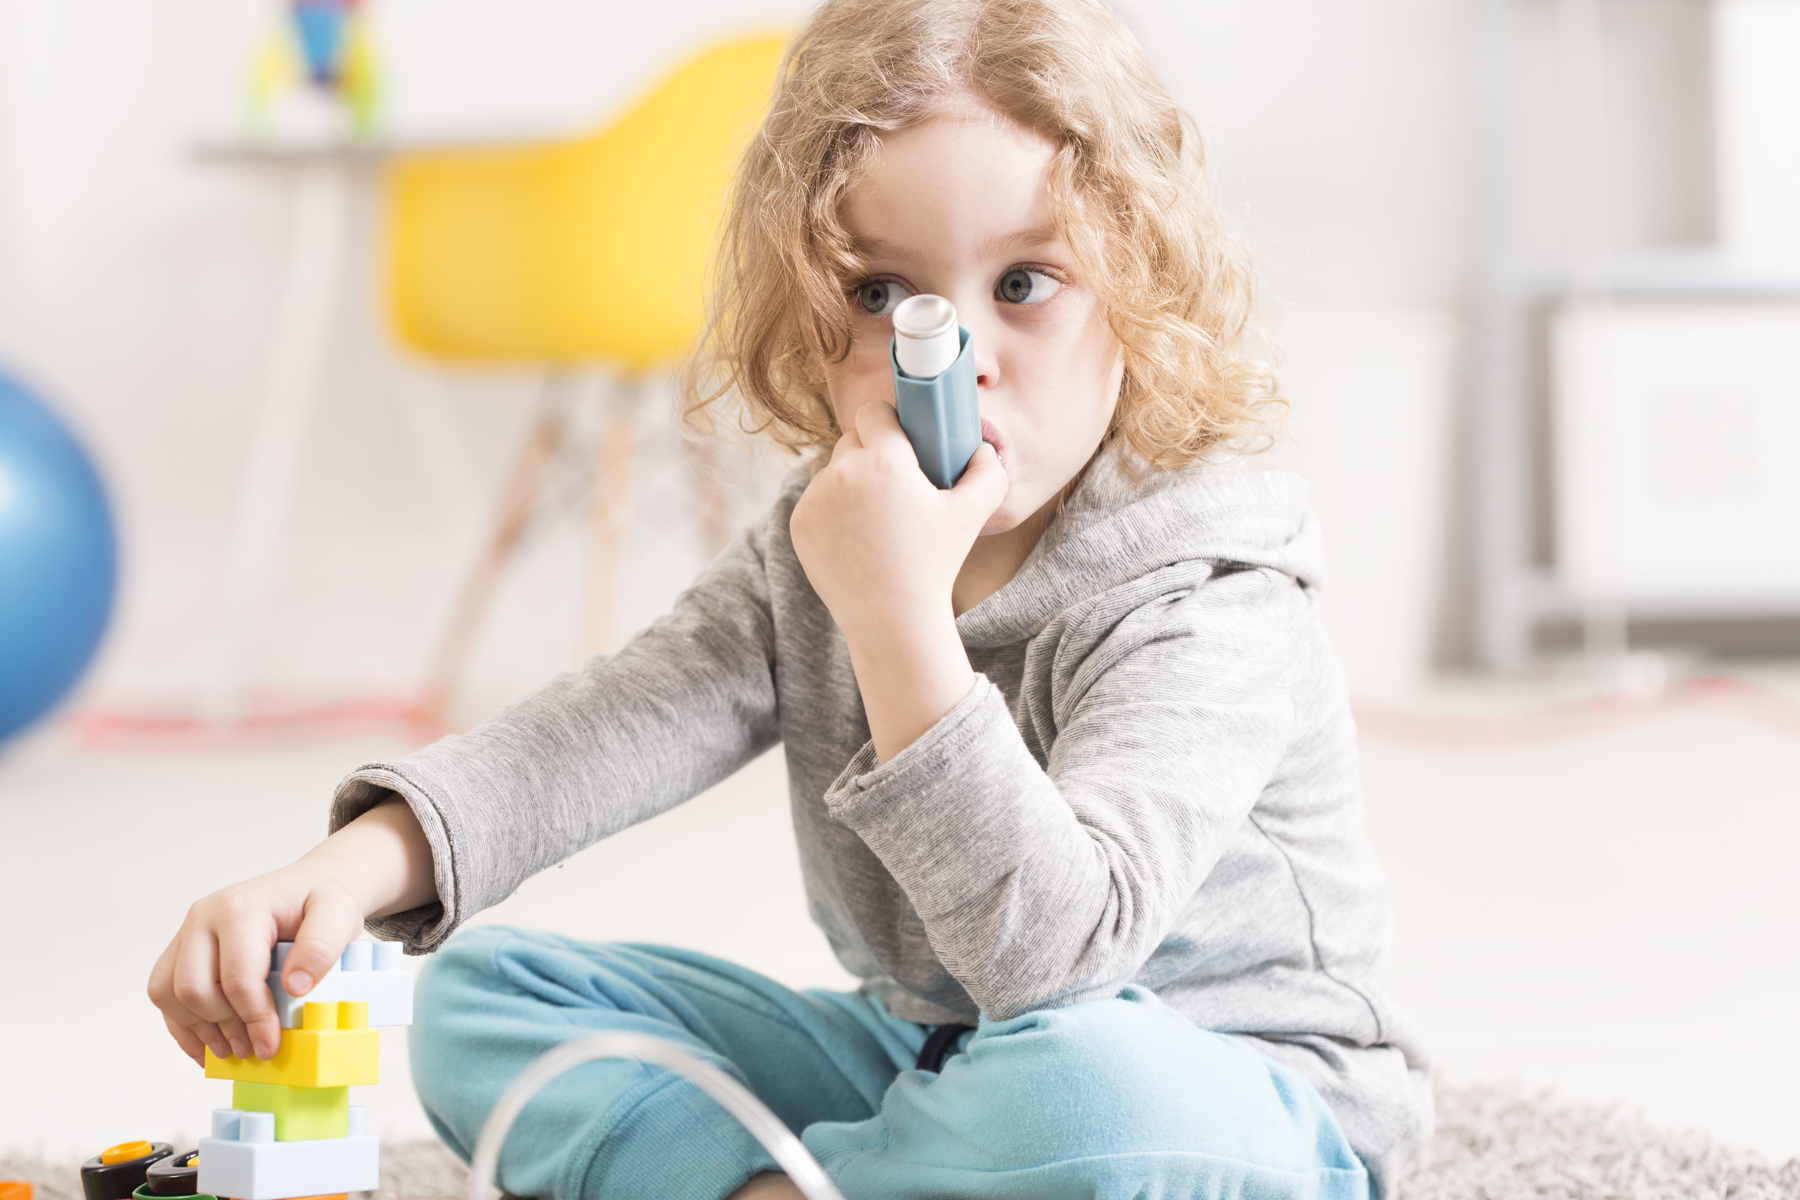 Obese Kids More Likely to Have Asthma, With Worse Symptoms